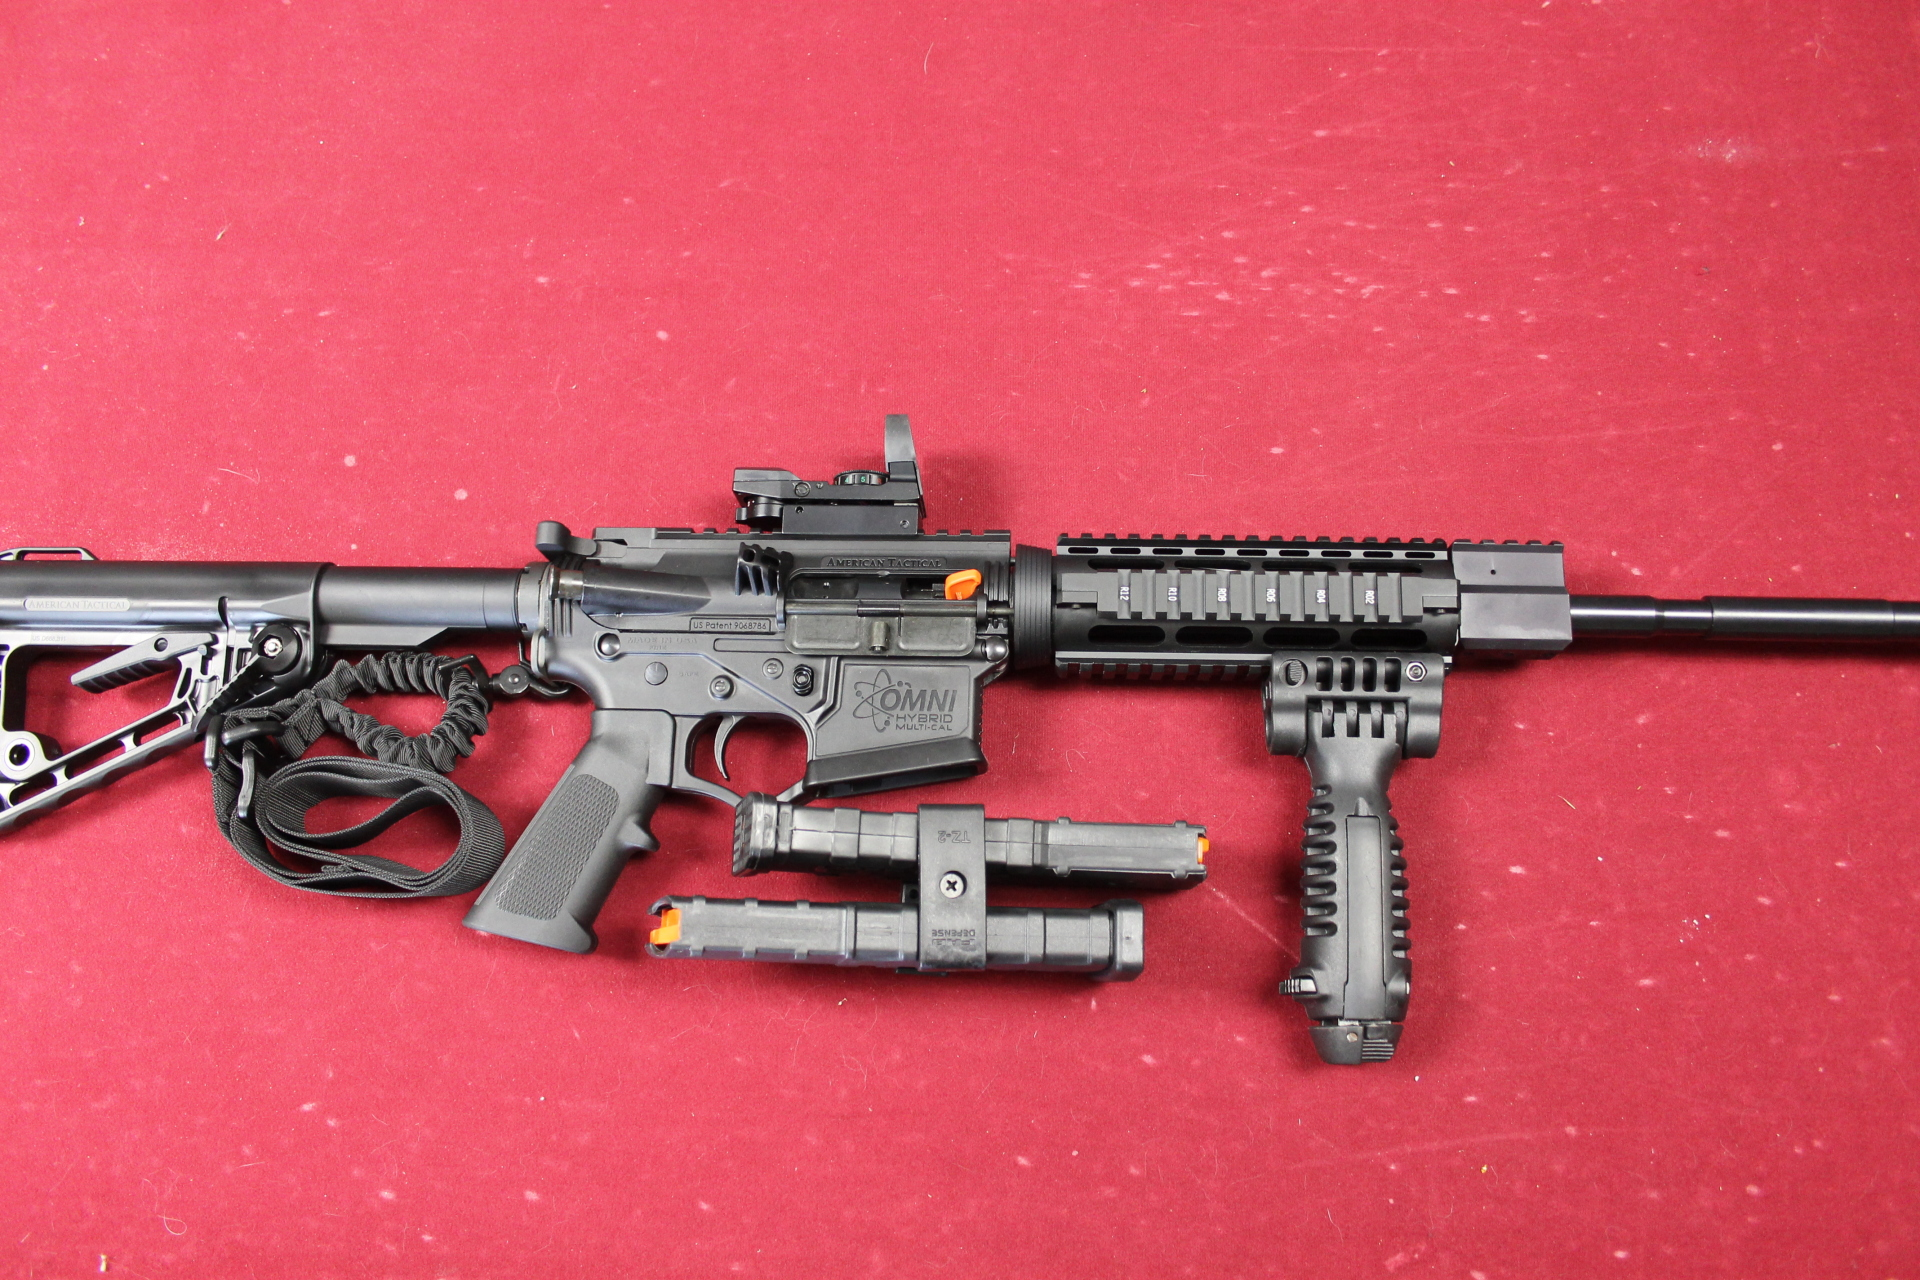 ATI TACTICAL AR 15 w accessories    Only $489.00